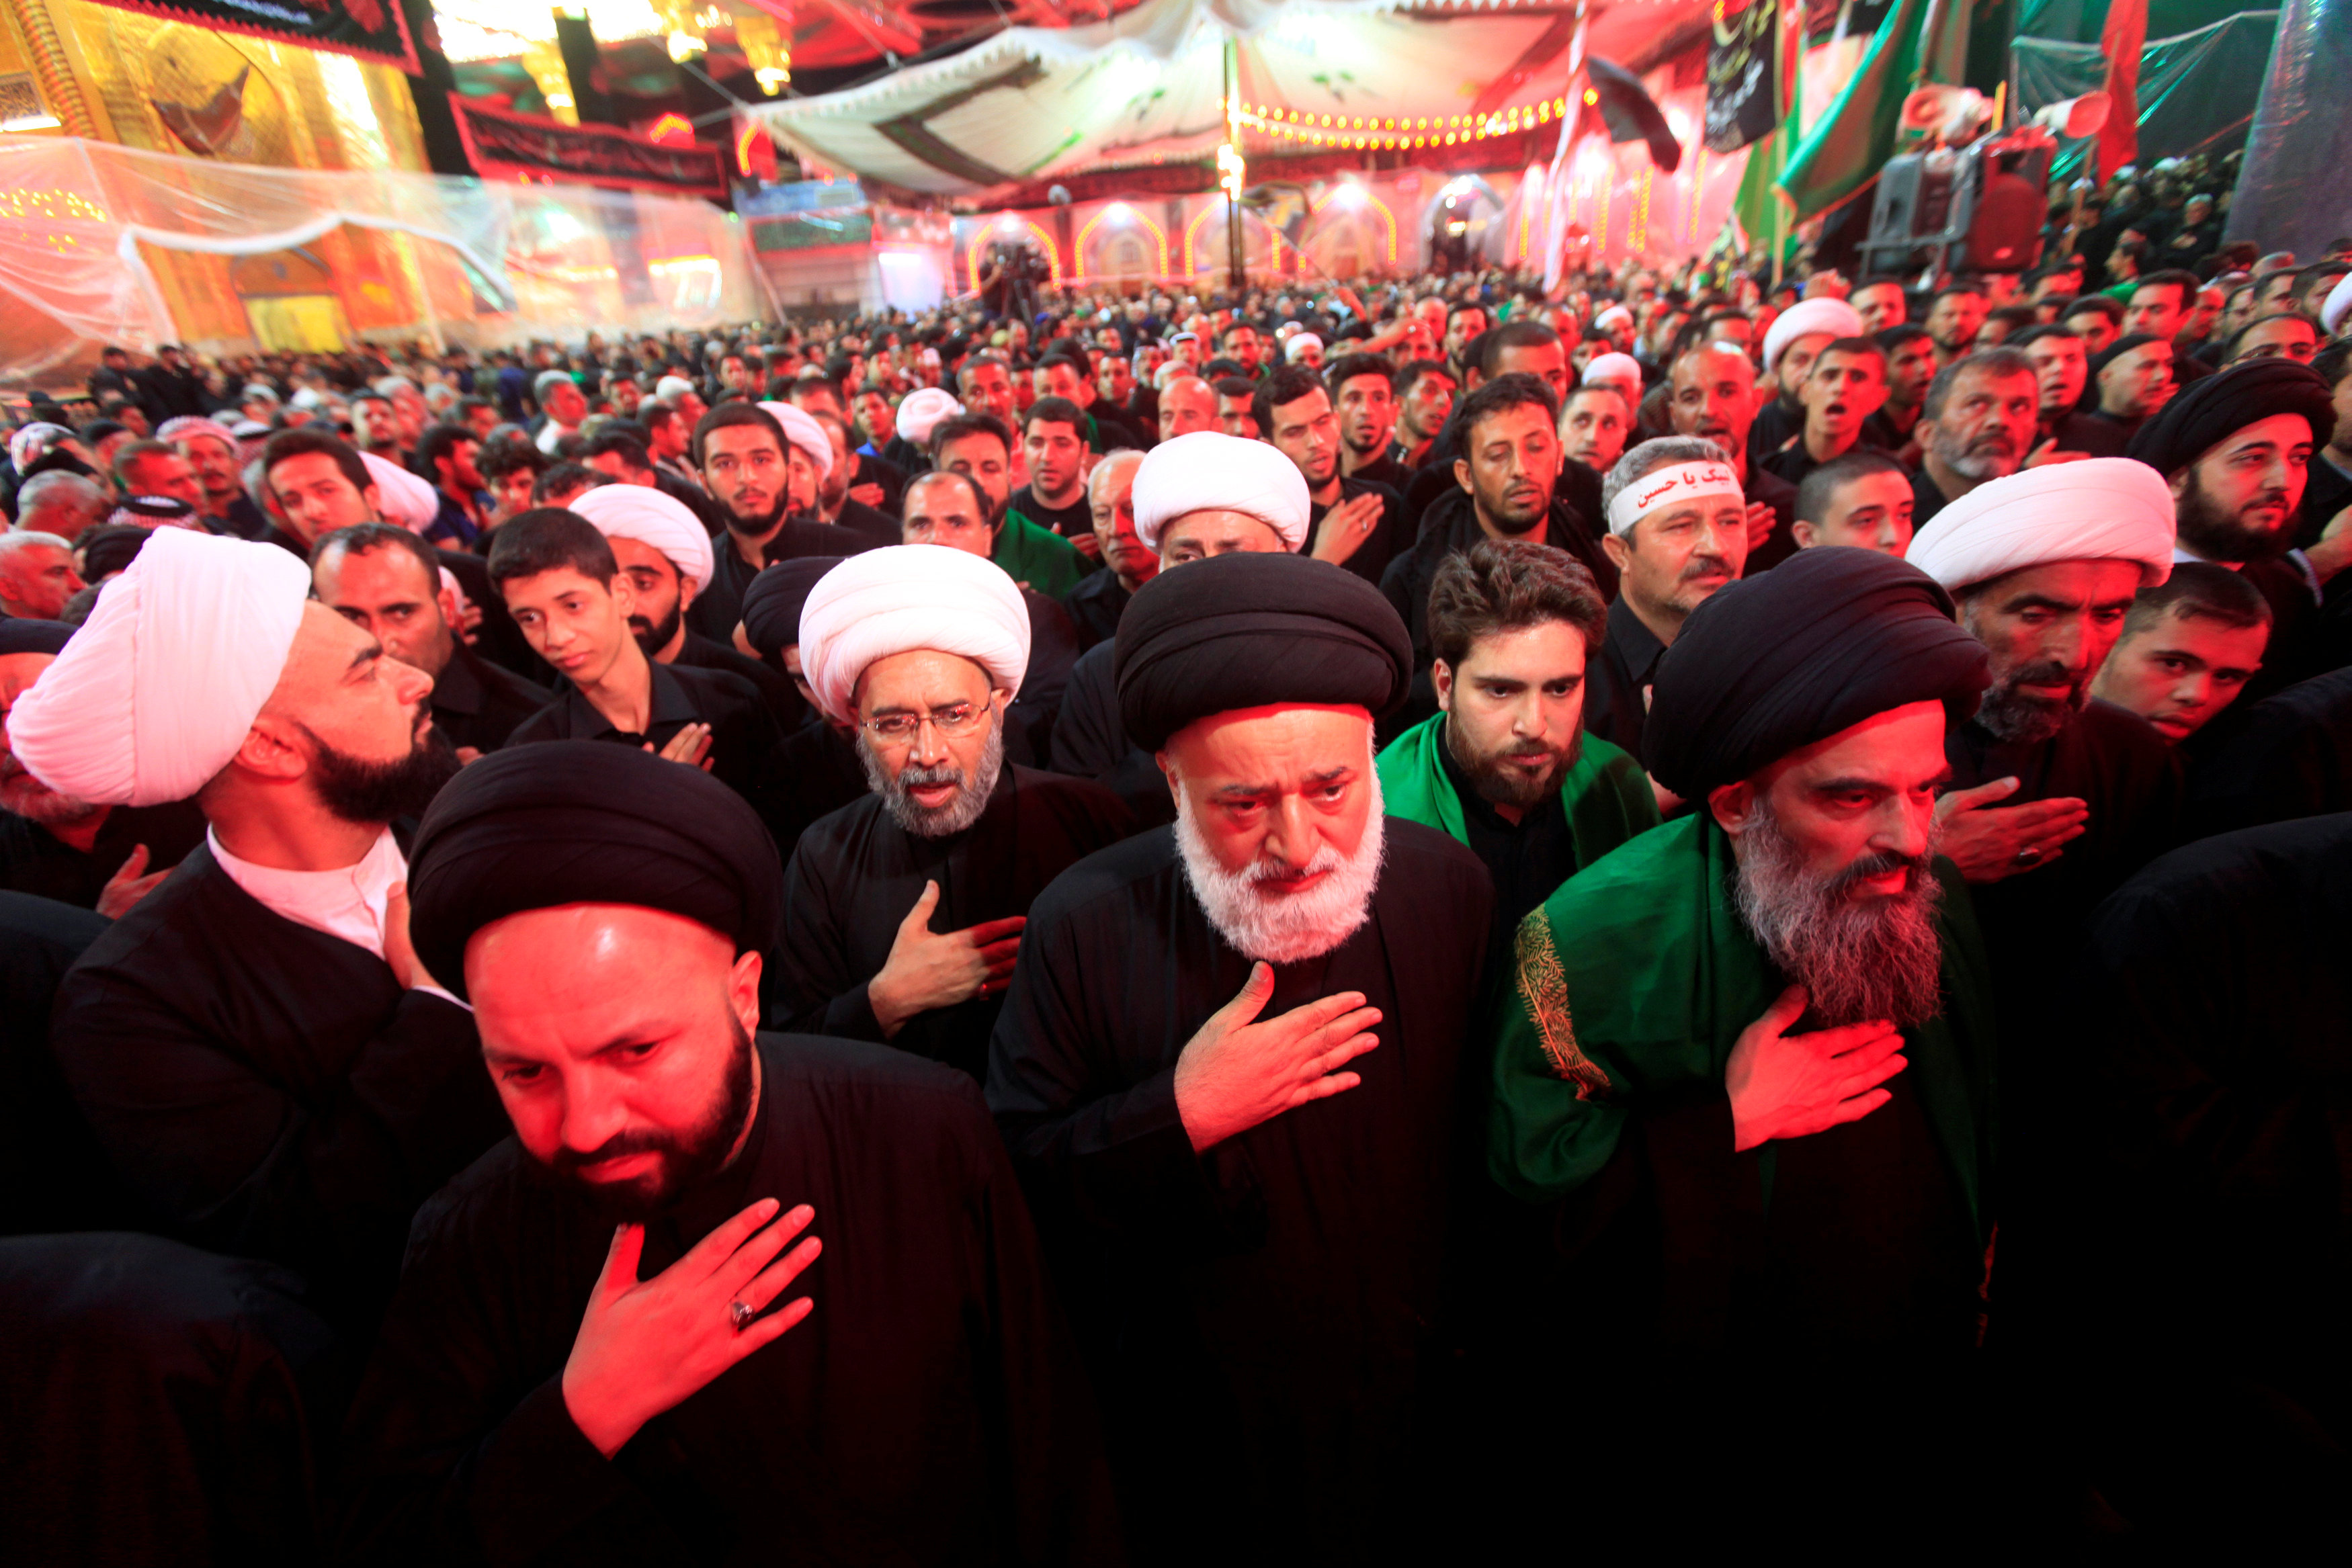 Shi'ite Muslim pilgrims gather as they commemorate Ashura in Kerbala